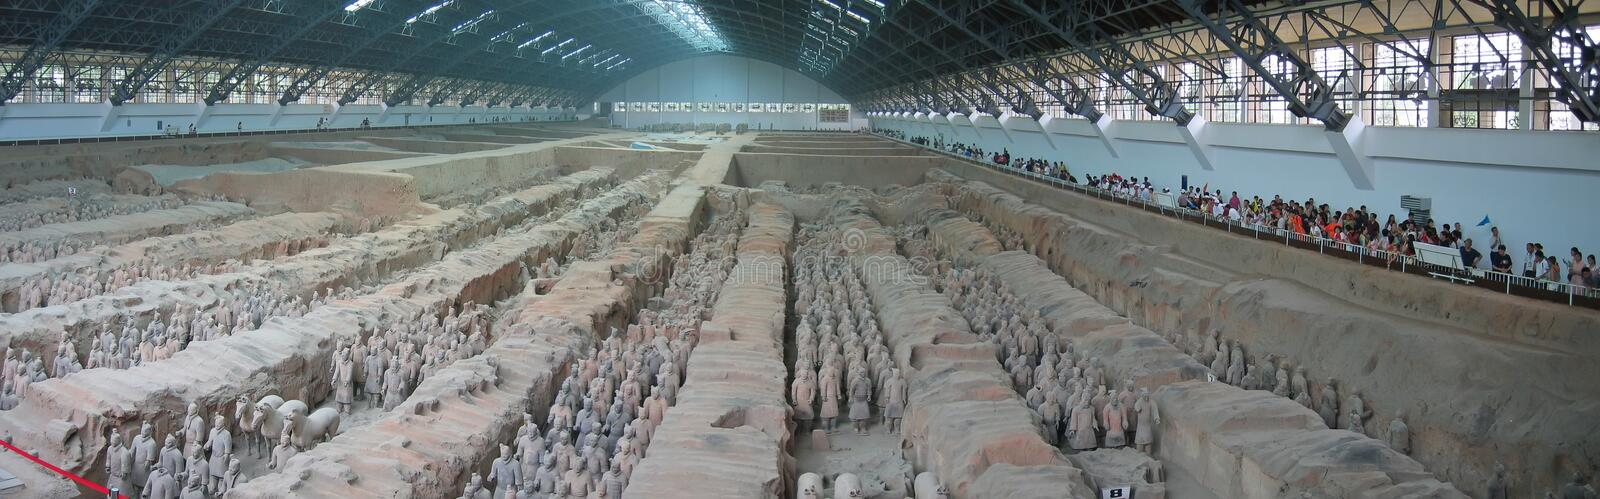 Download All The Terracotta Warriors Stock Image - Image: 2245995